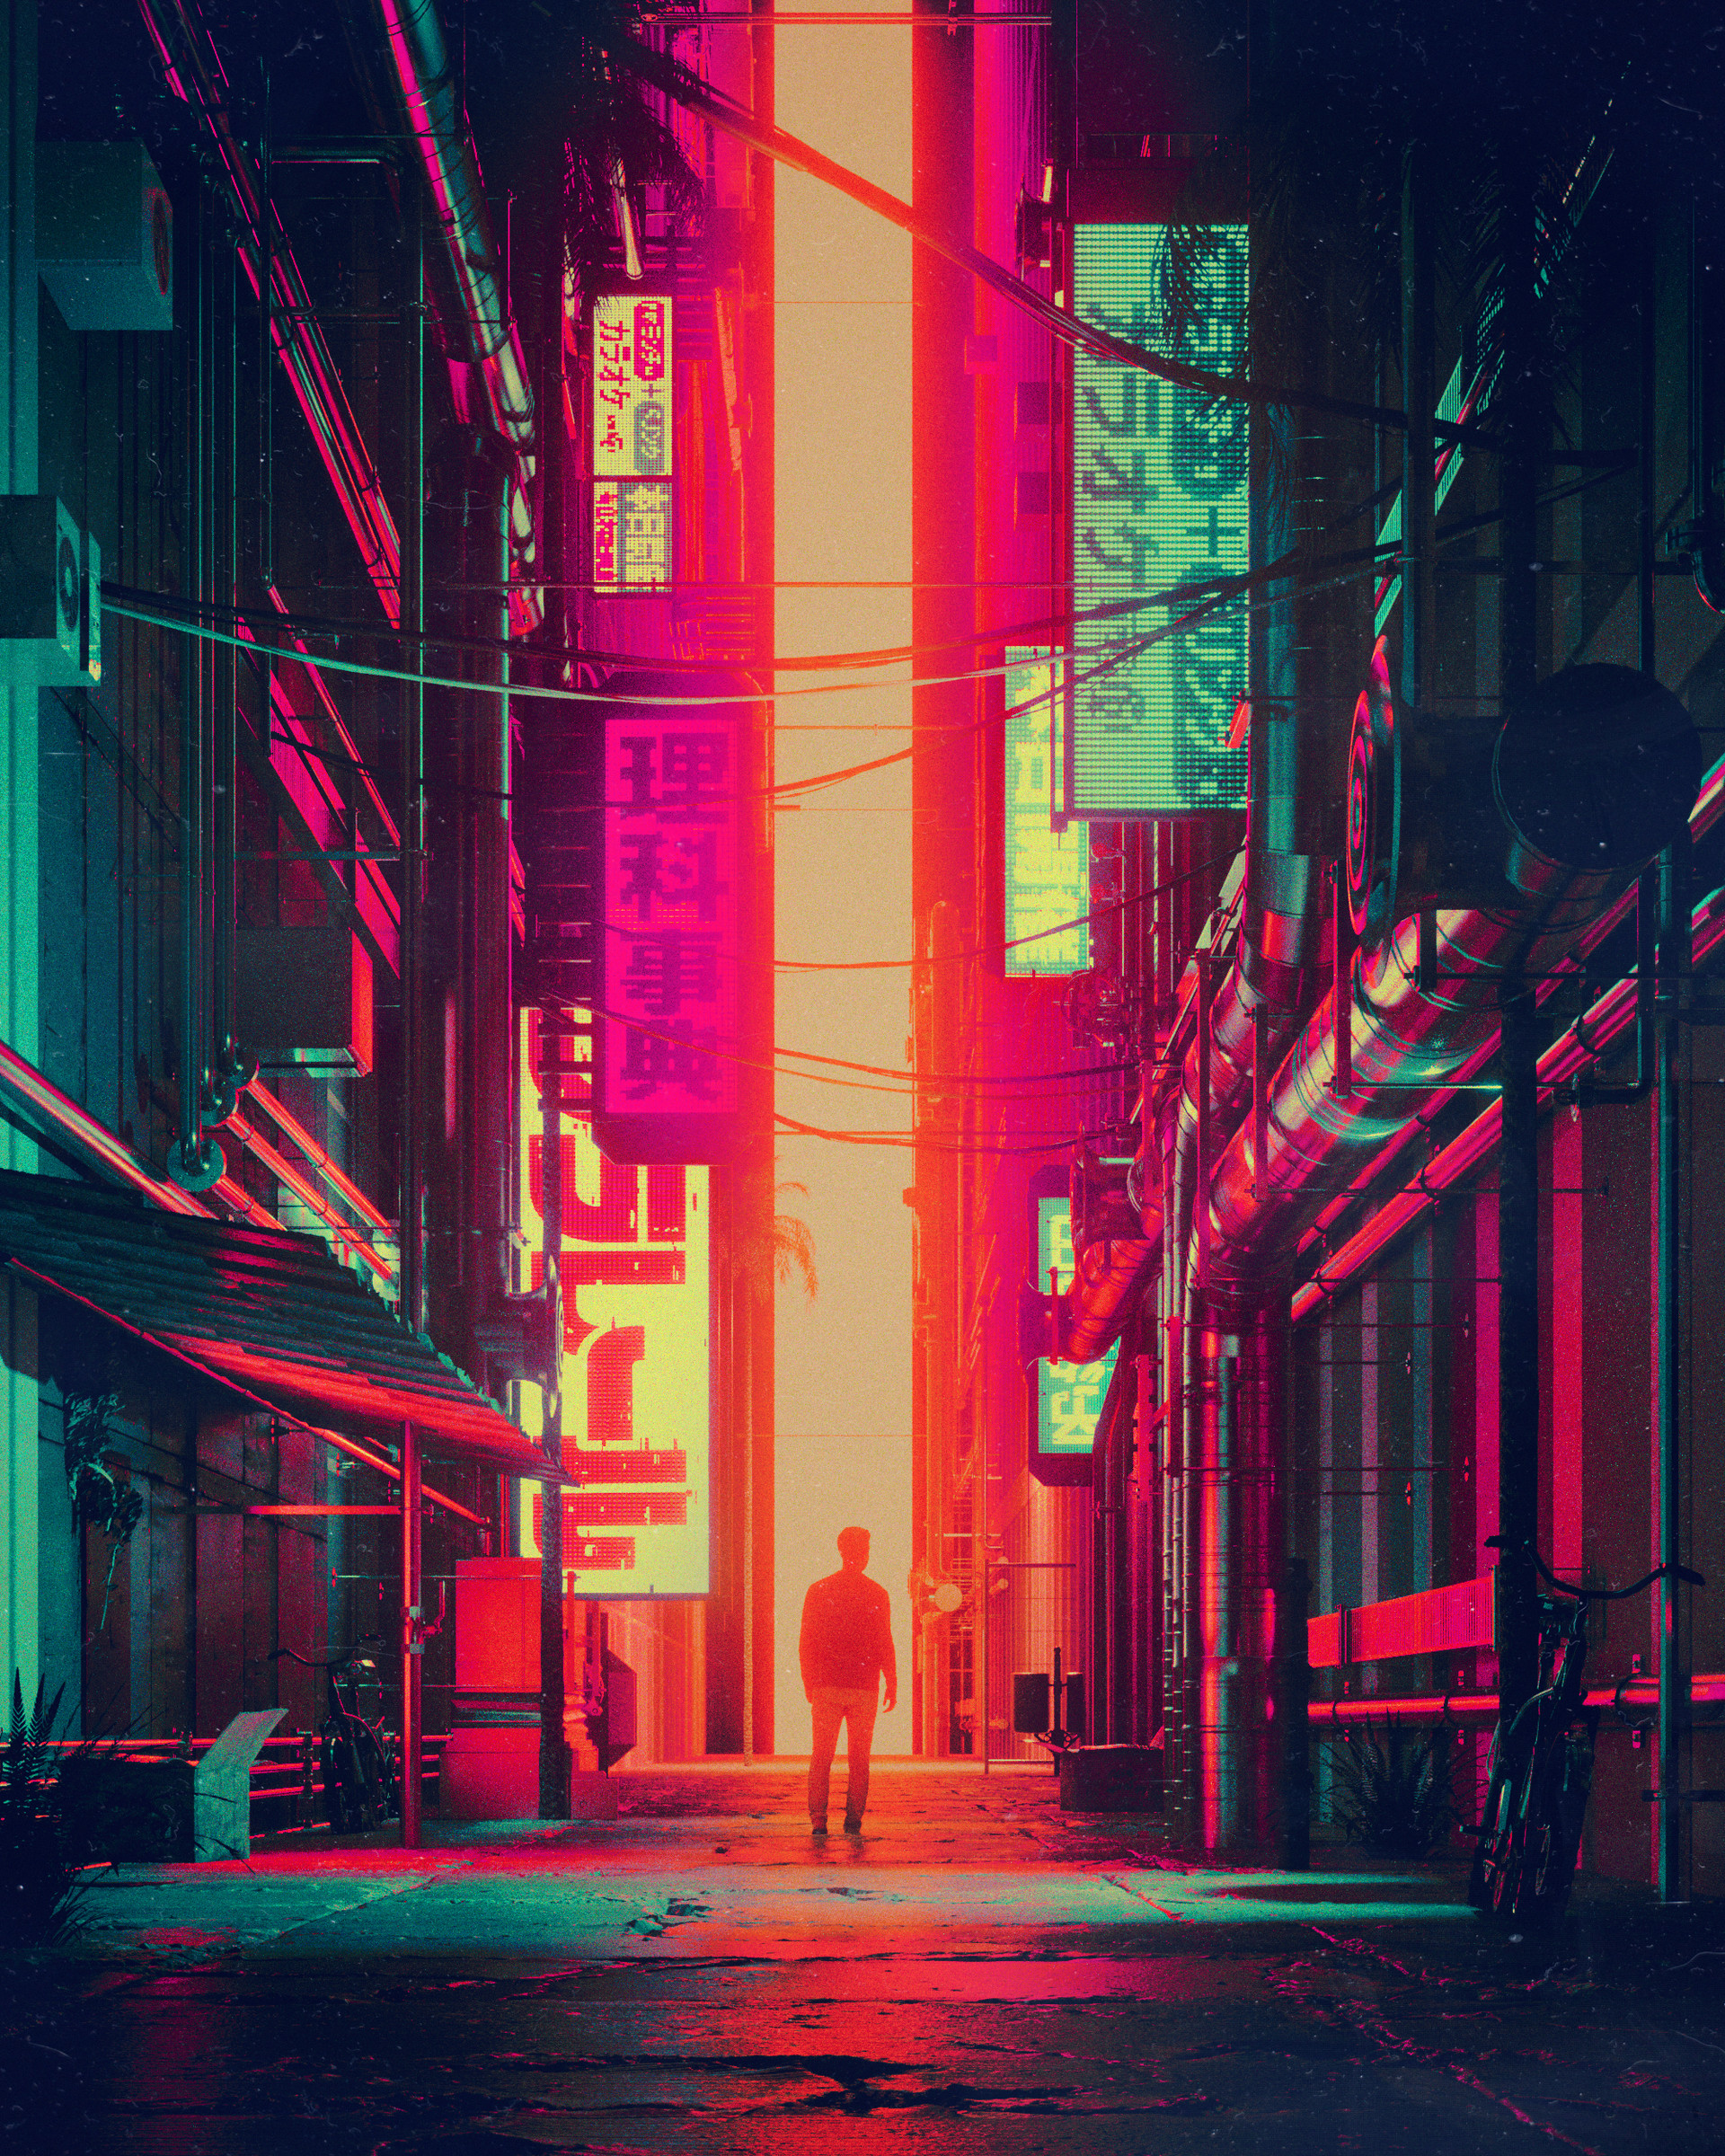 68574 download wallpaper Miscellanea, Silhouette, Miscellaneous, Art, City, Futurism, Street screensavers and pictures for free